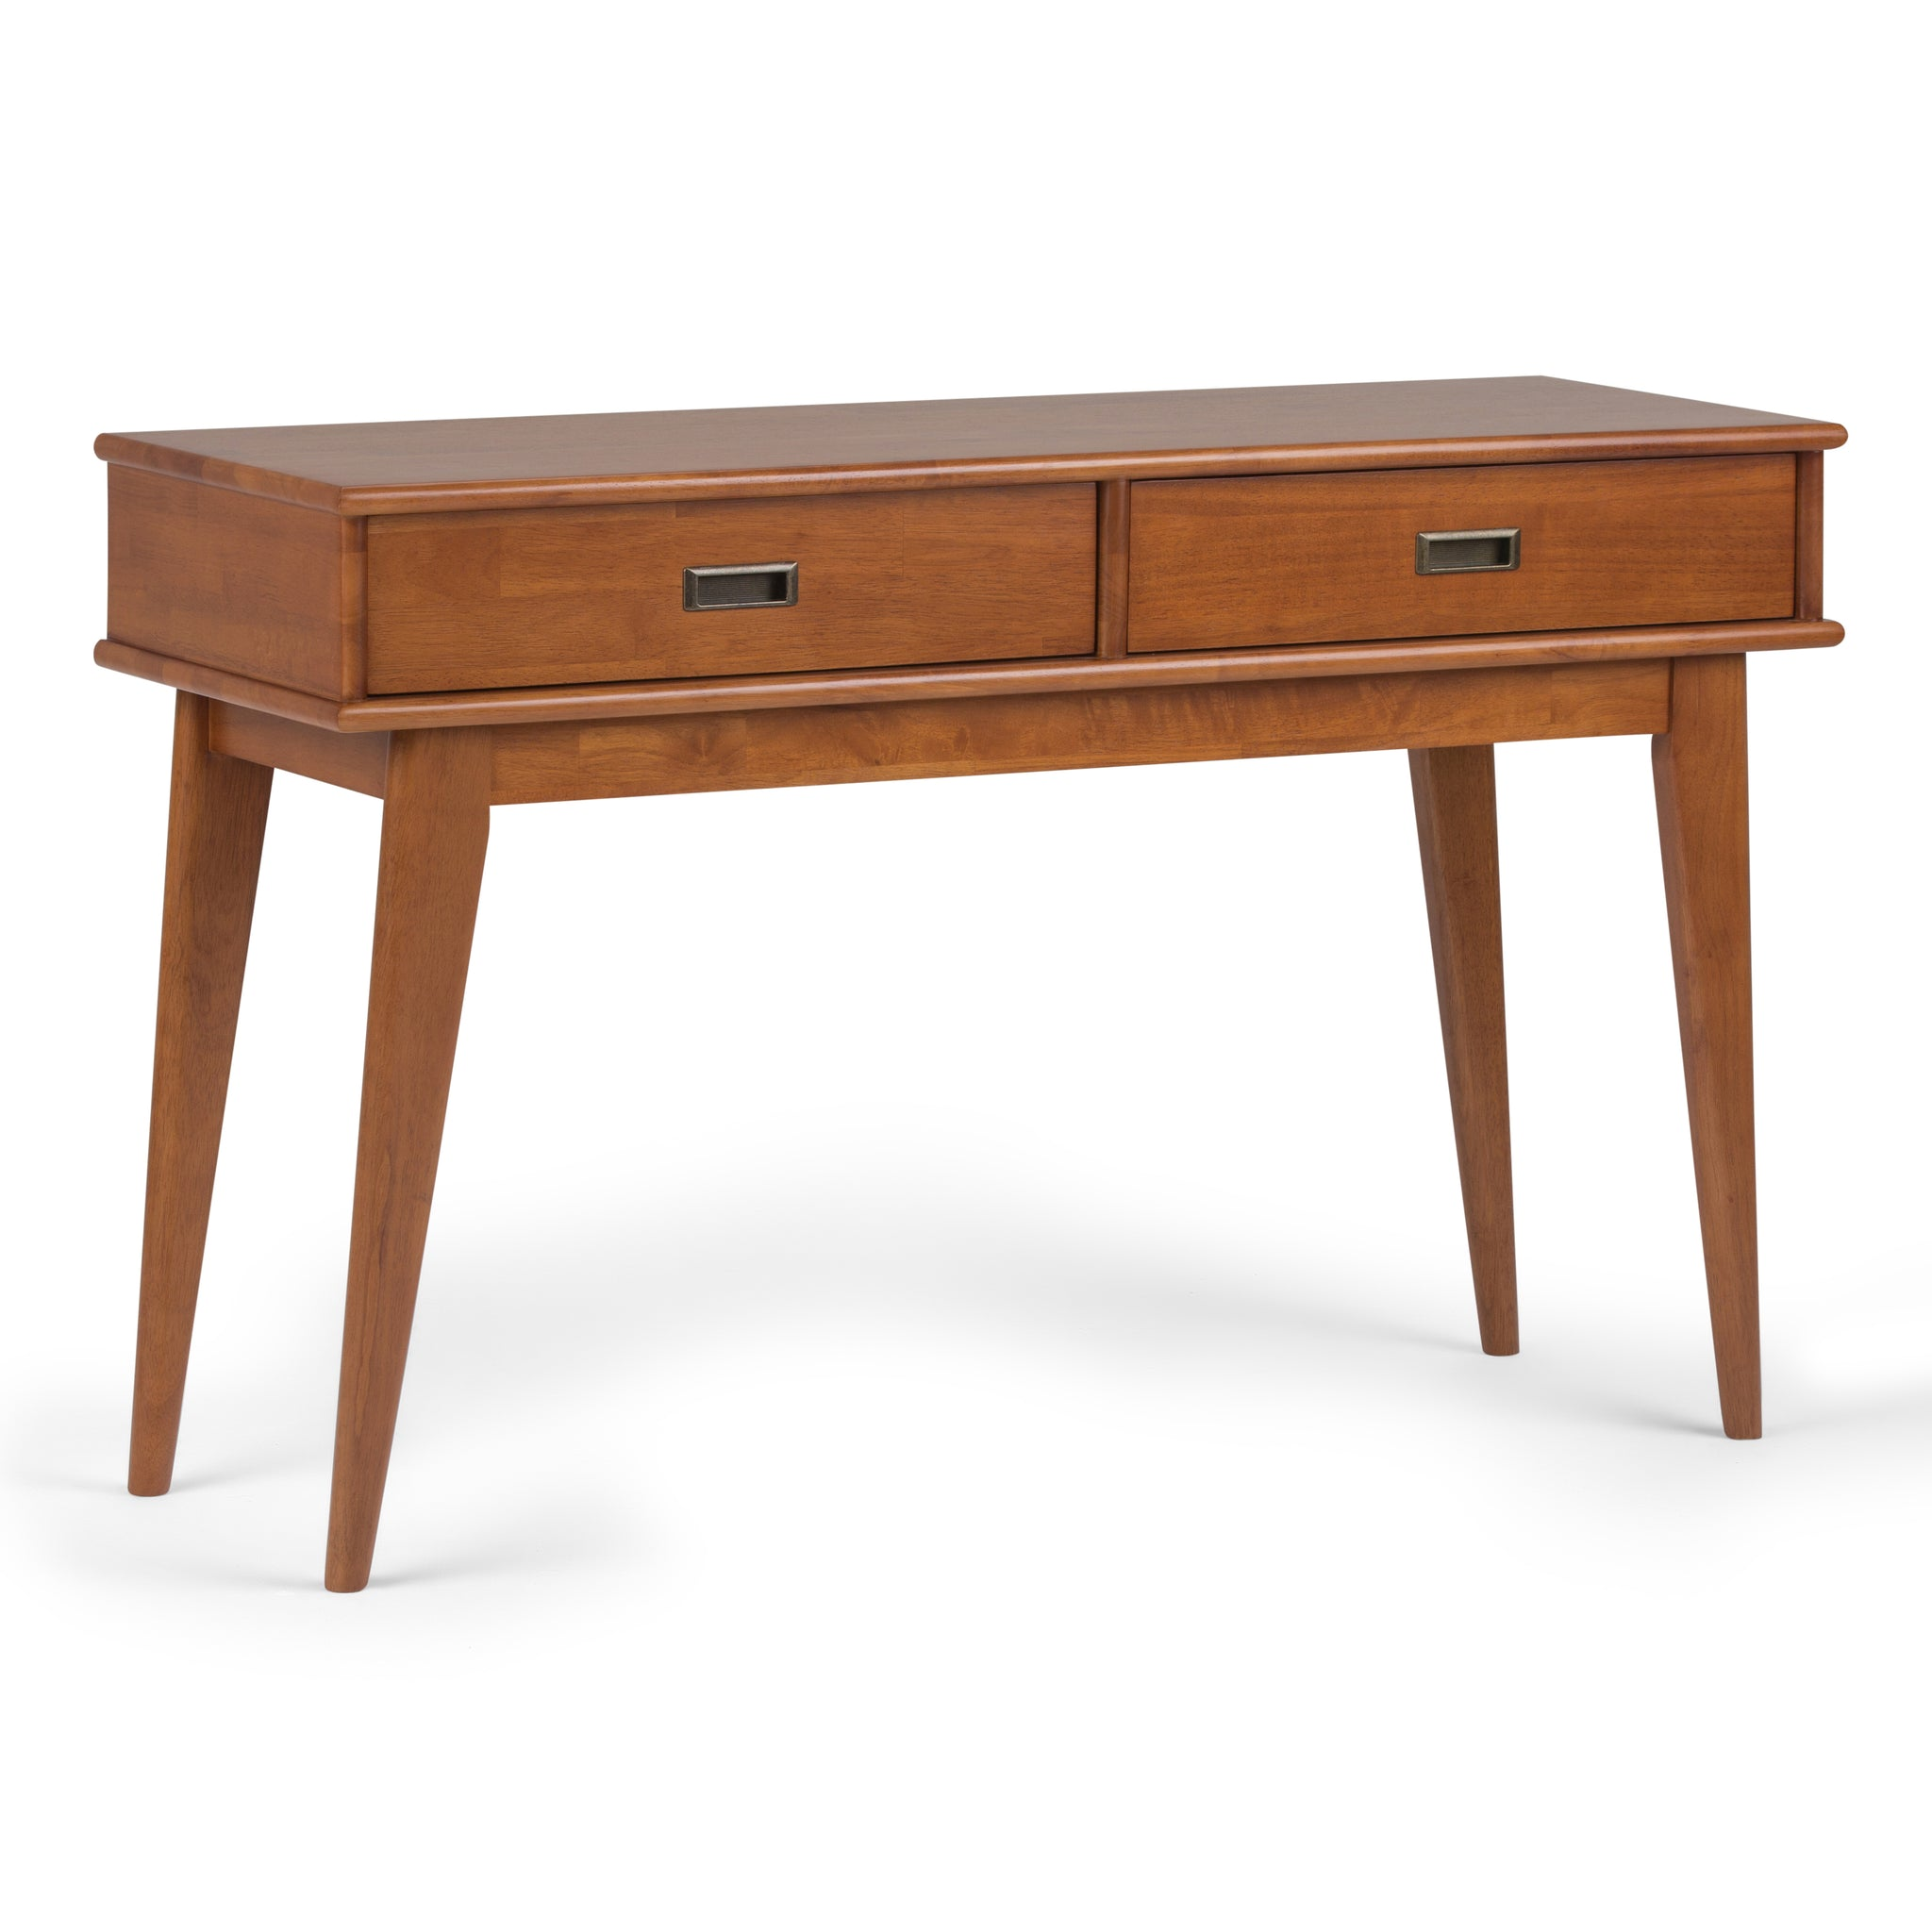 Draper Mid Century Solid Hardwood Console Sofa Table in Teak Brown